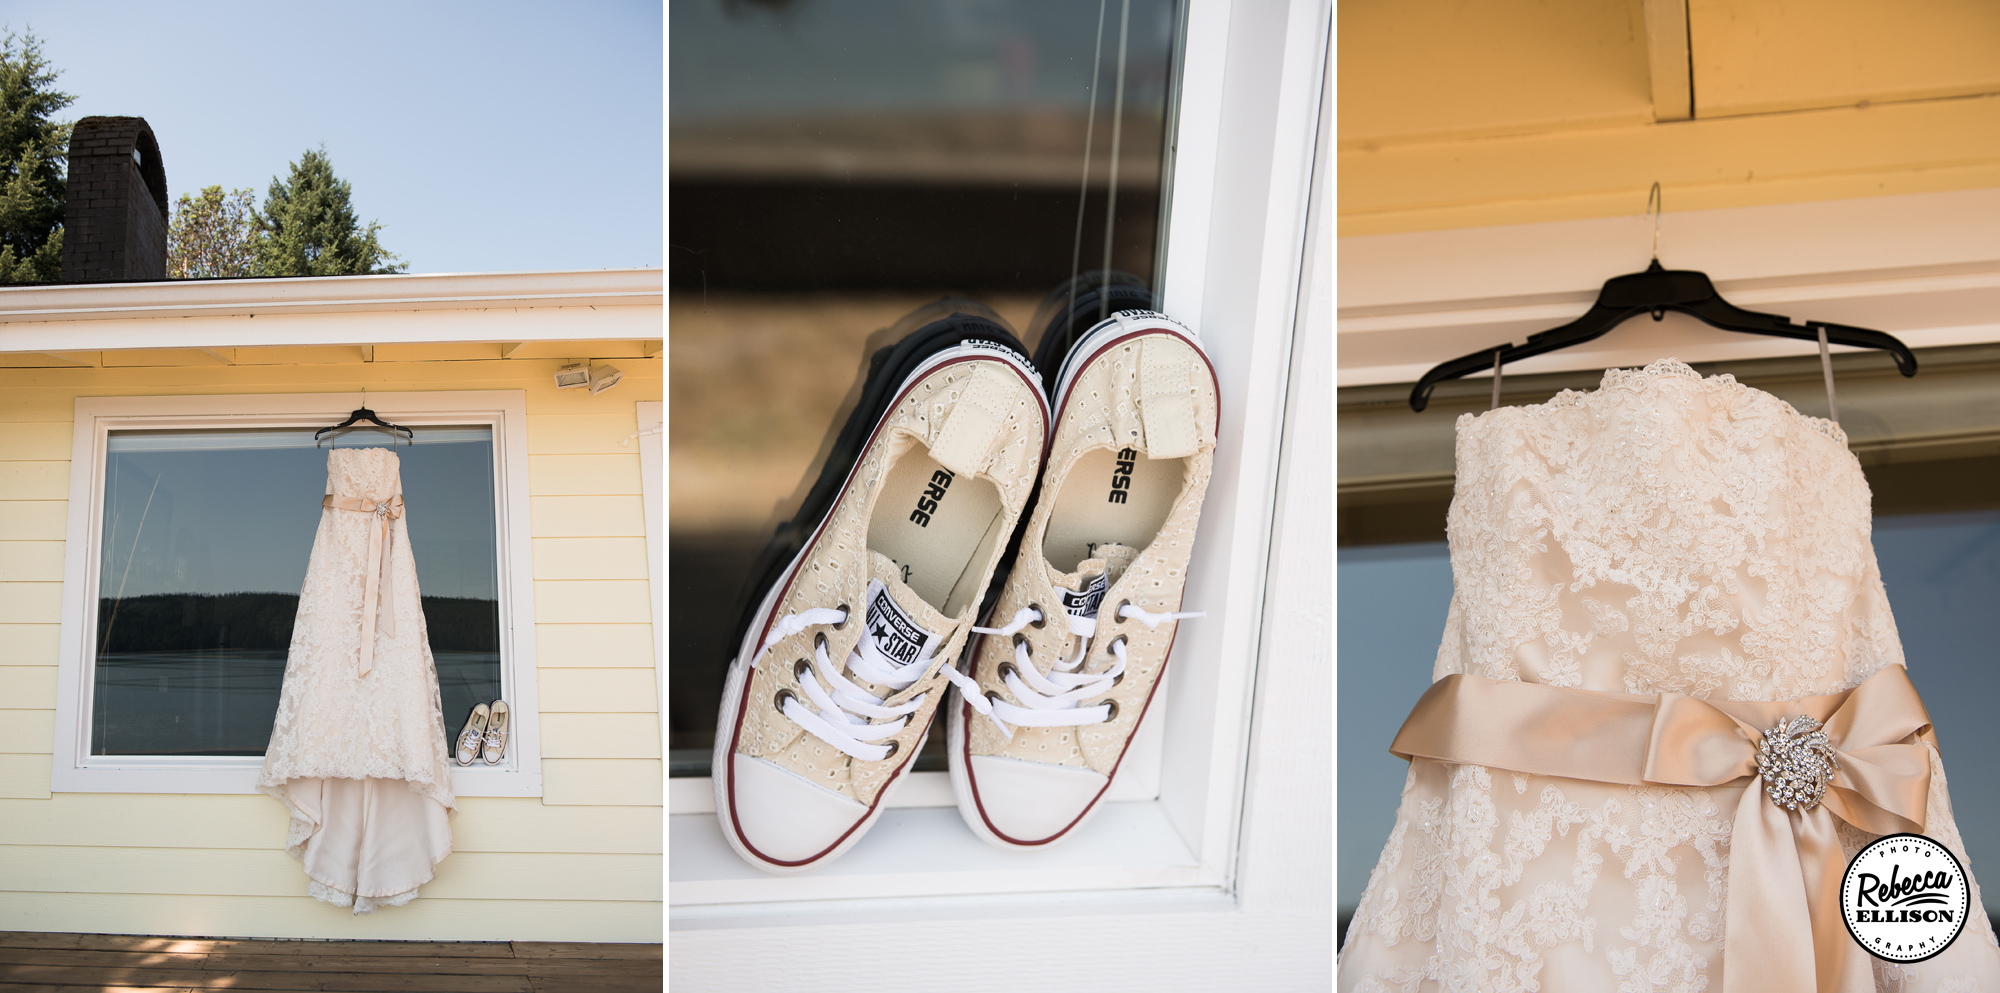 Wedding dress details featuring a belted white wedding dress and white sneakers photographed at Hoodsport Beach Club by Rebecca Ellison Photography